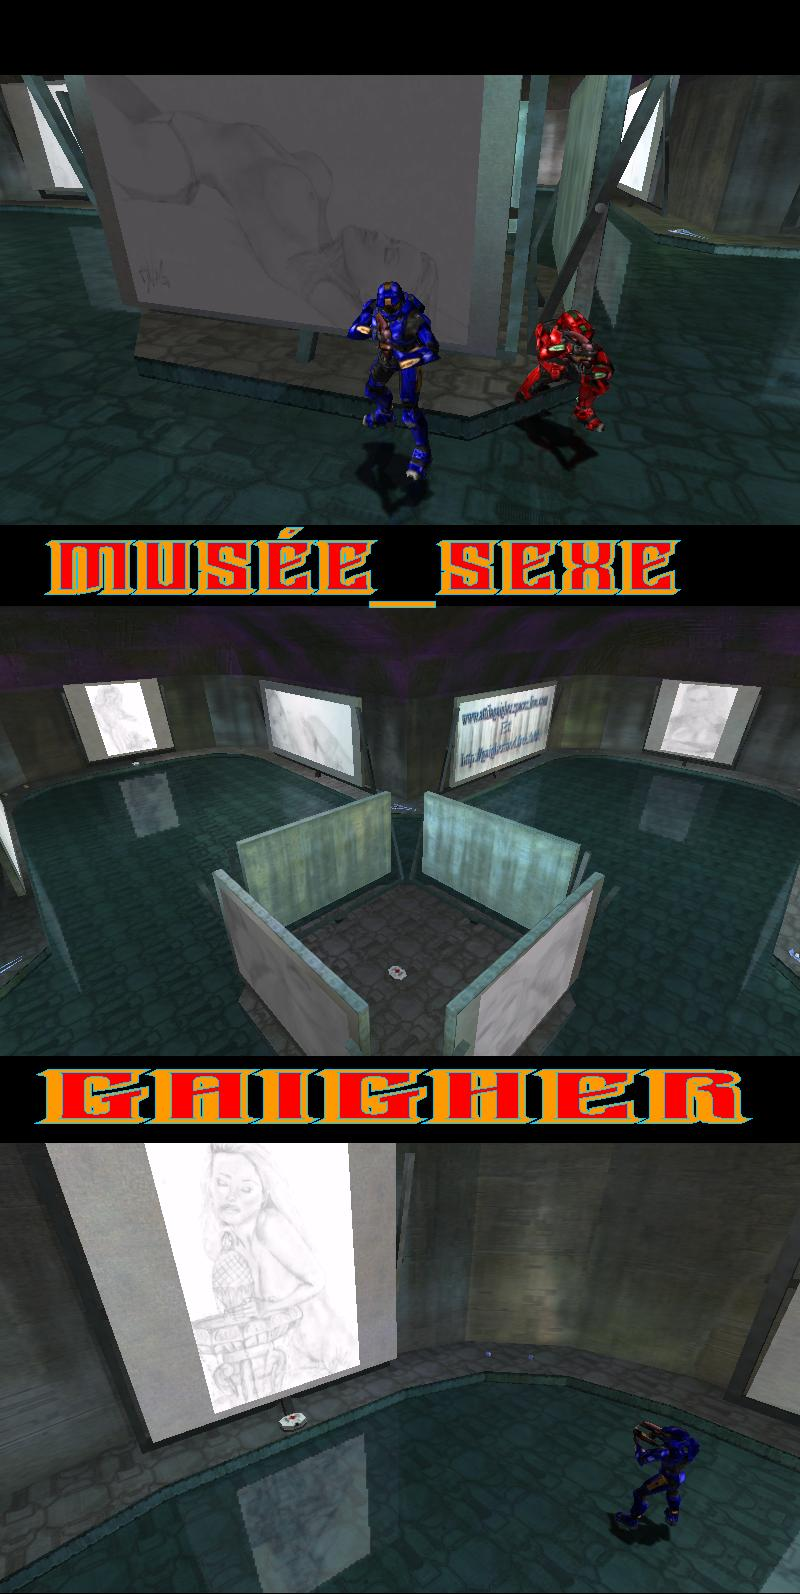 Musee_sexe Musee sexe maphaloce map halo ce<br />maphalo halomap carte cartes cr&eacute;ation GAIGHER mod